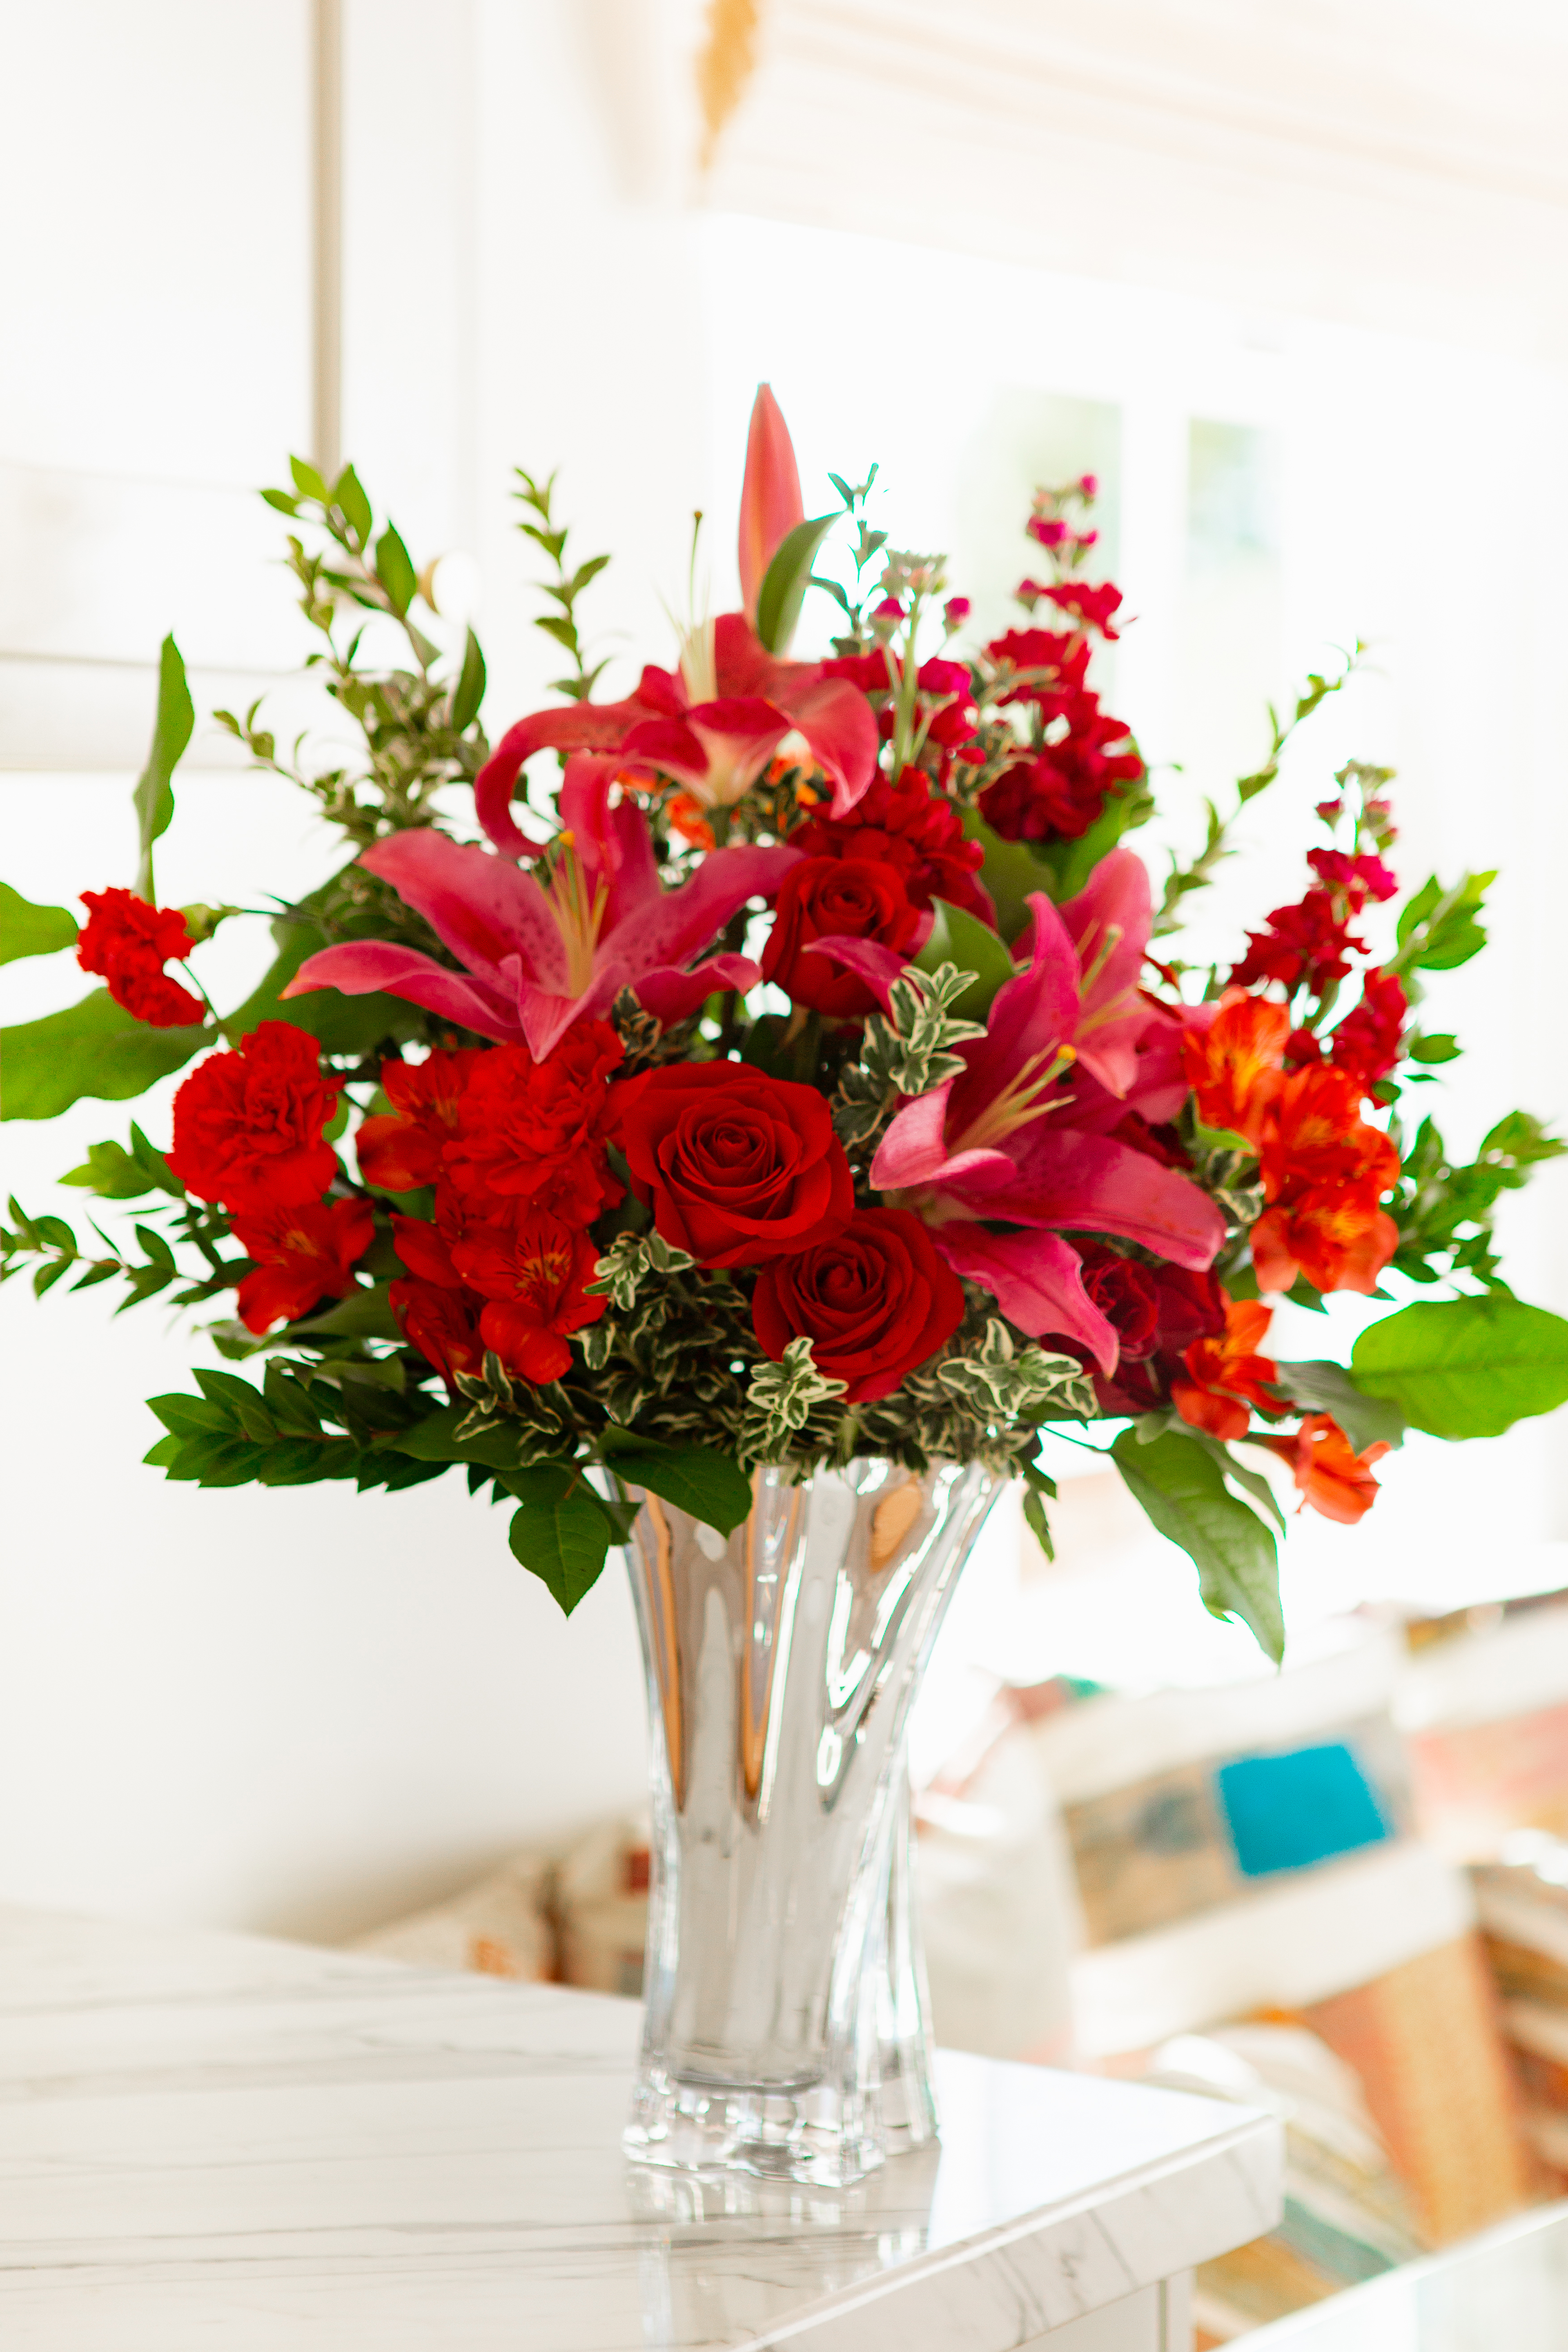 Pink lilies and red roses with greenery in silver vase on table